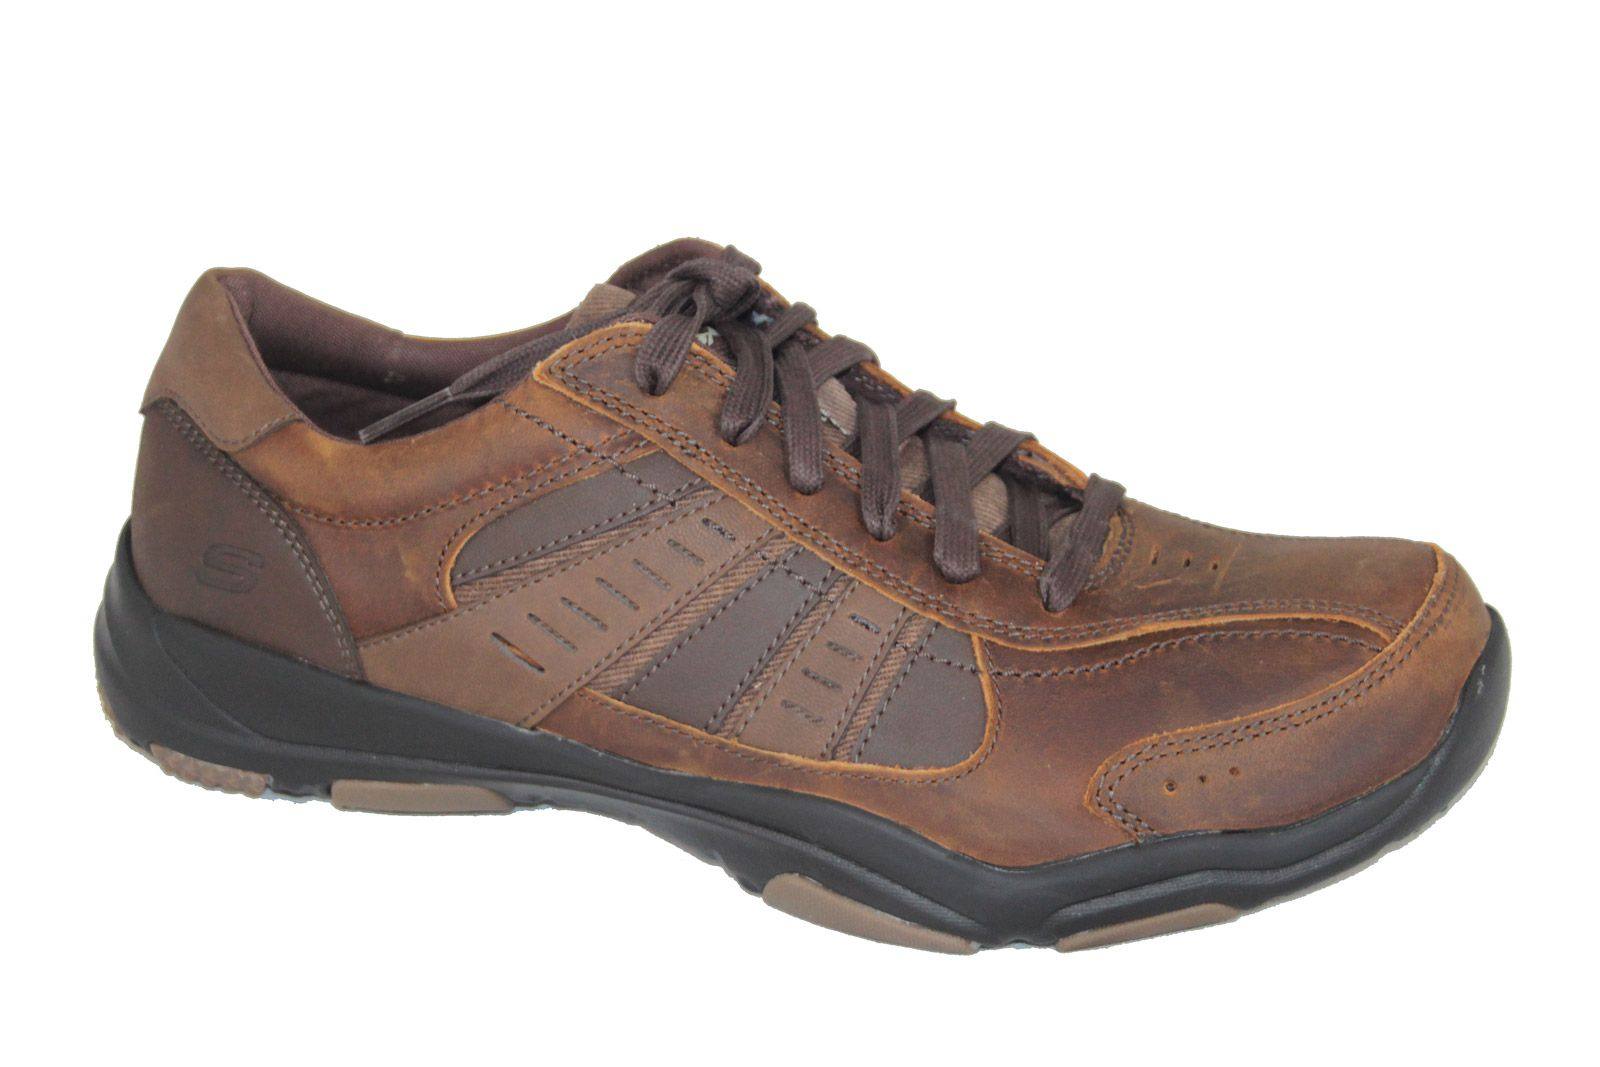 Details about Skechers Relaxed Fit Larson Trainers in Black & Brown 64833